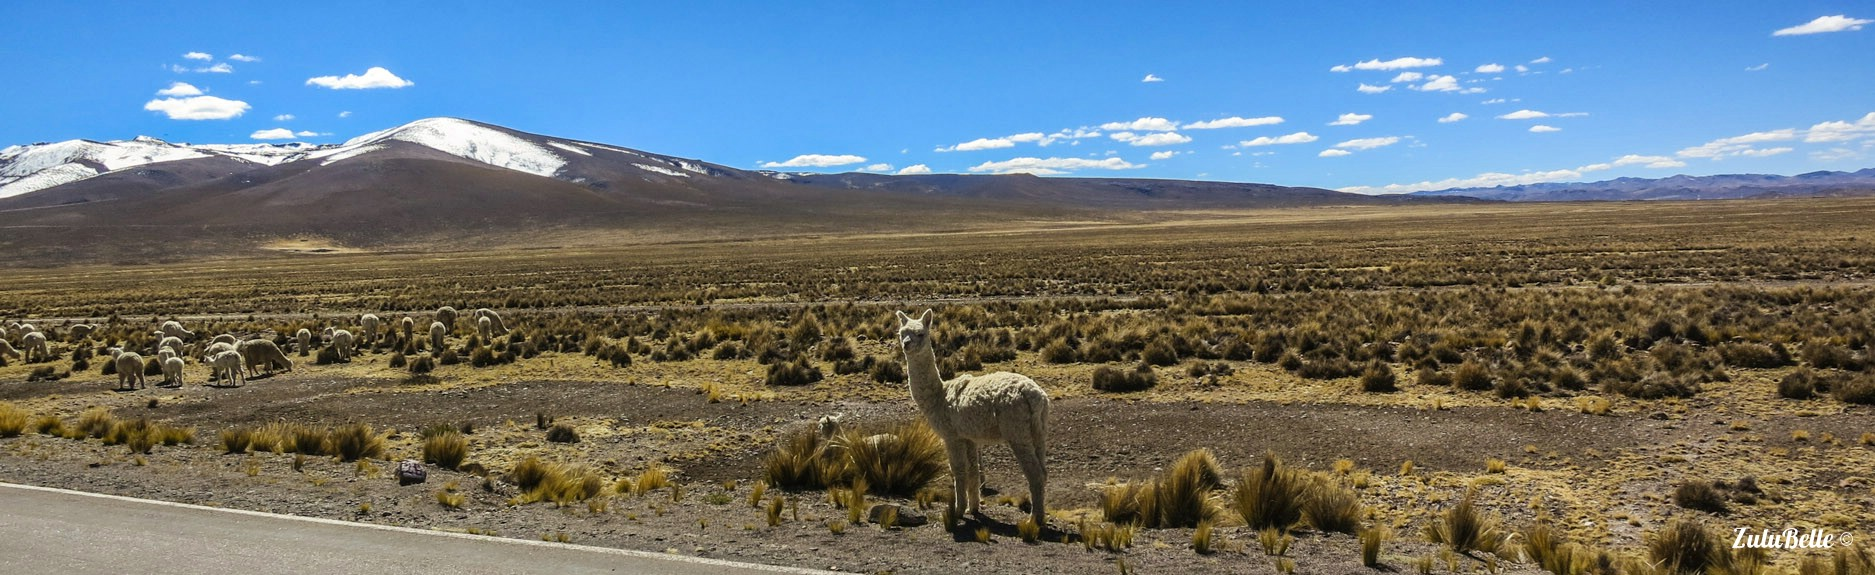 The Altiplano Llama, A2A Expedition